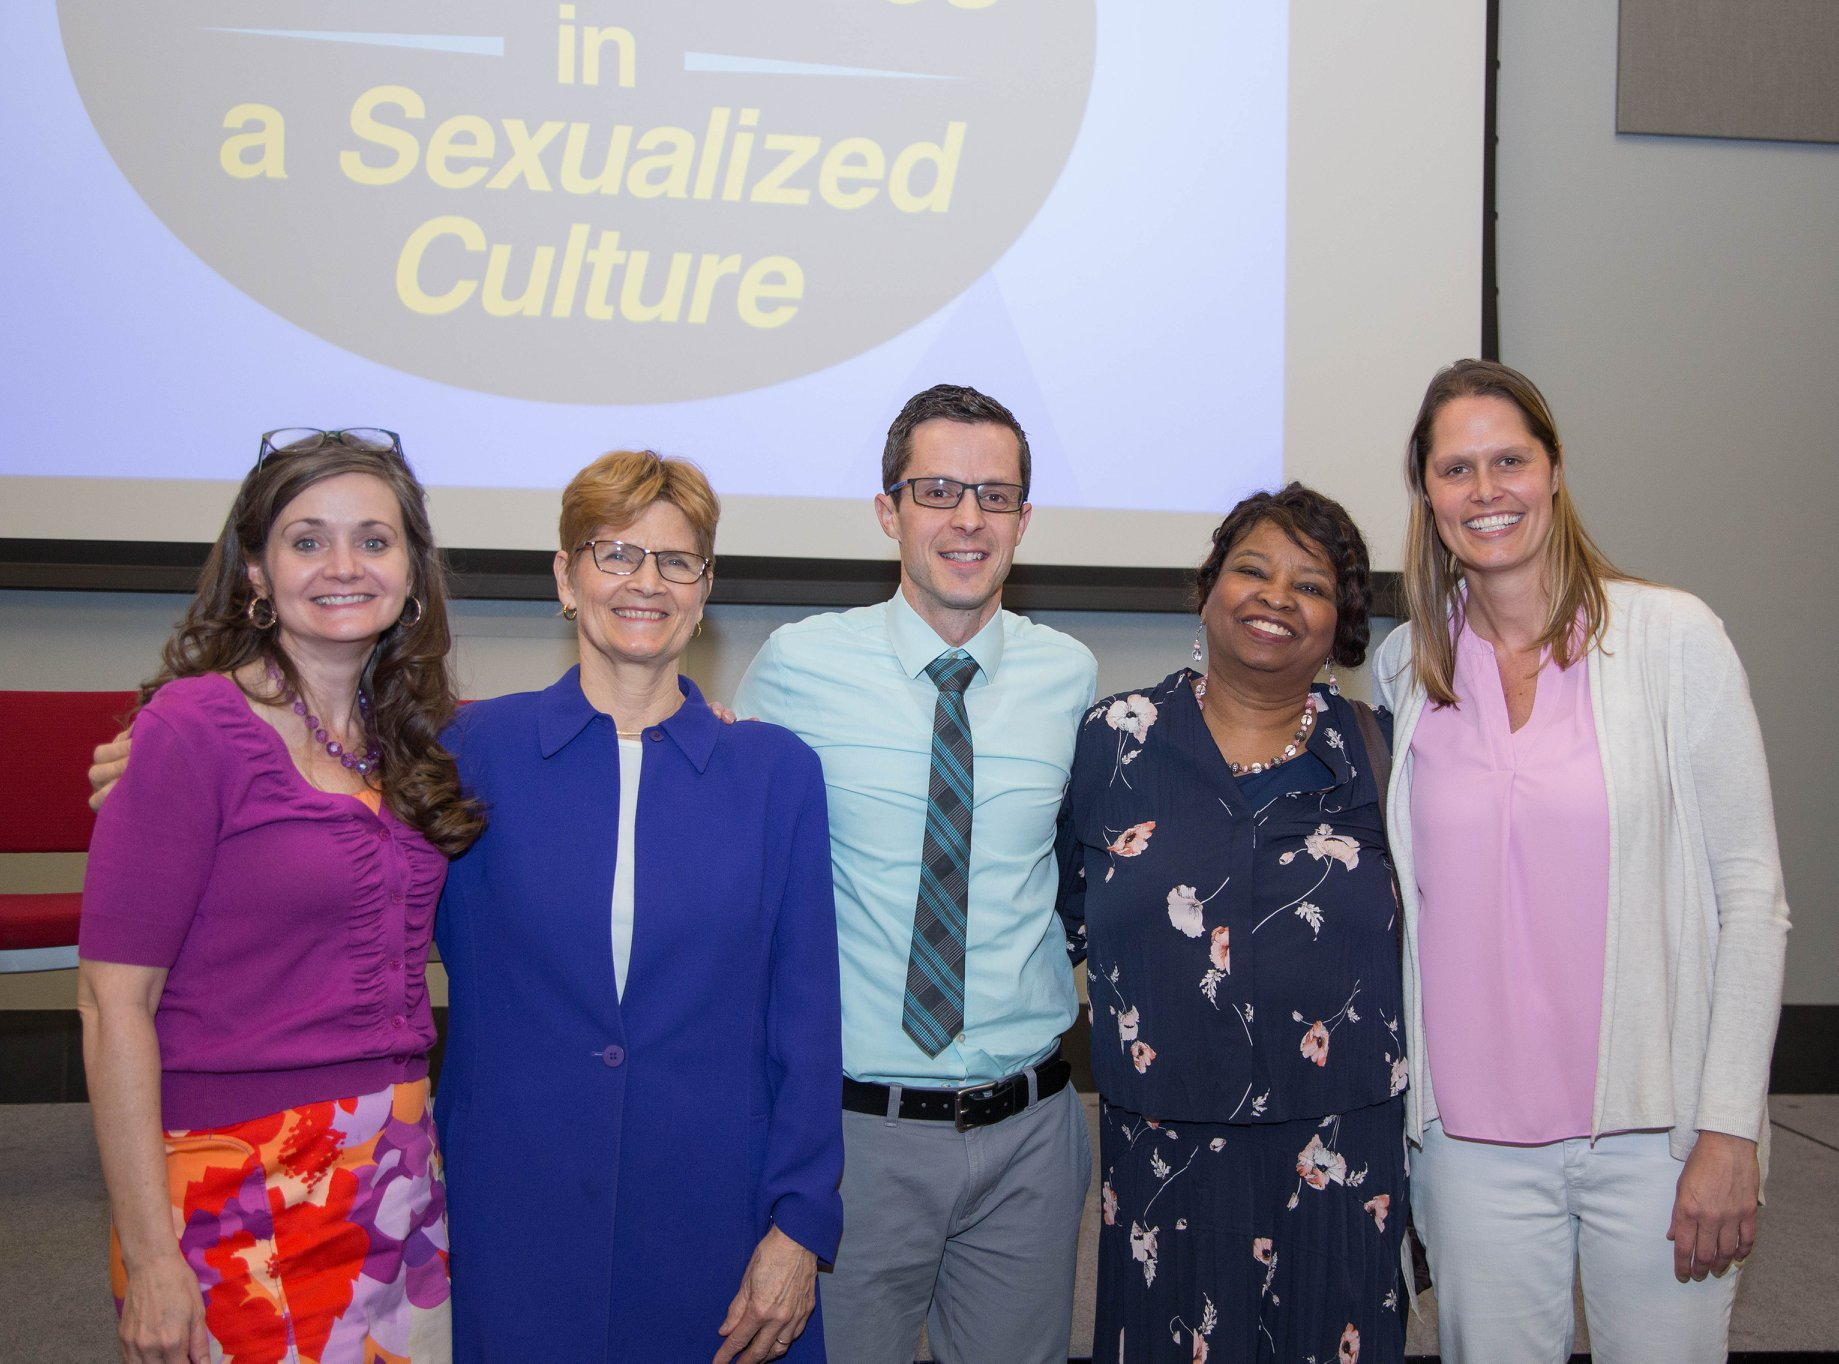 The featured speakers for the event: Lisa Thompson (left), Lynn Walsh (center left), Dr Timothy Rarick (Center), Dr Sandra Lowen (center right), and Melissa Holland (right) .